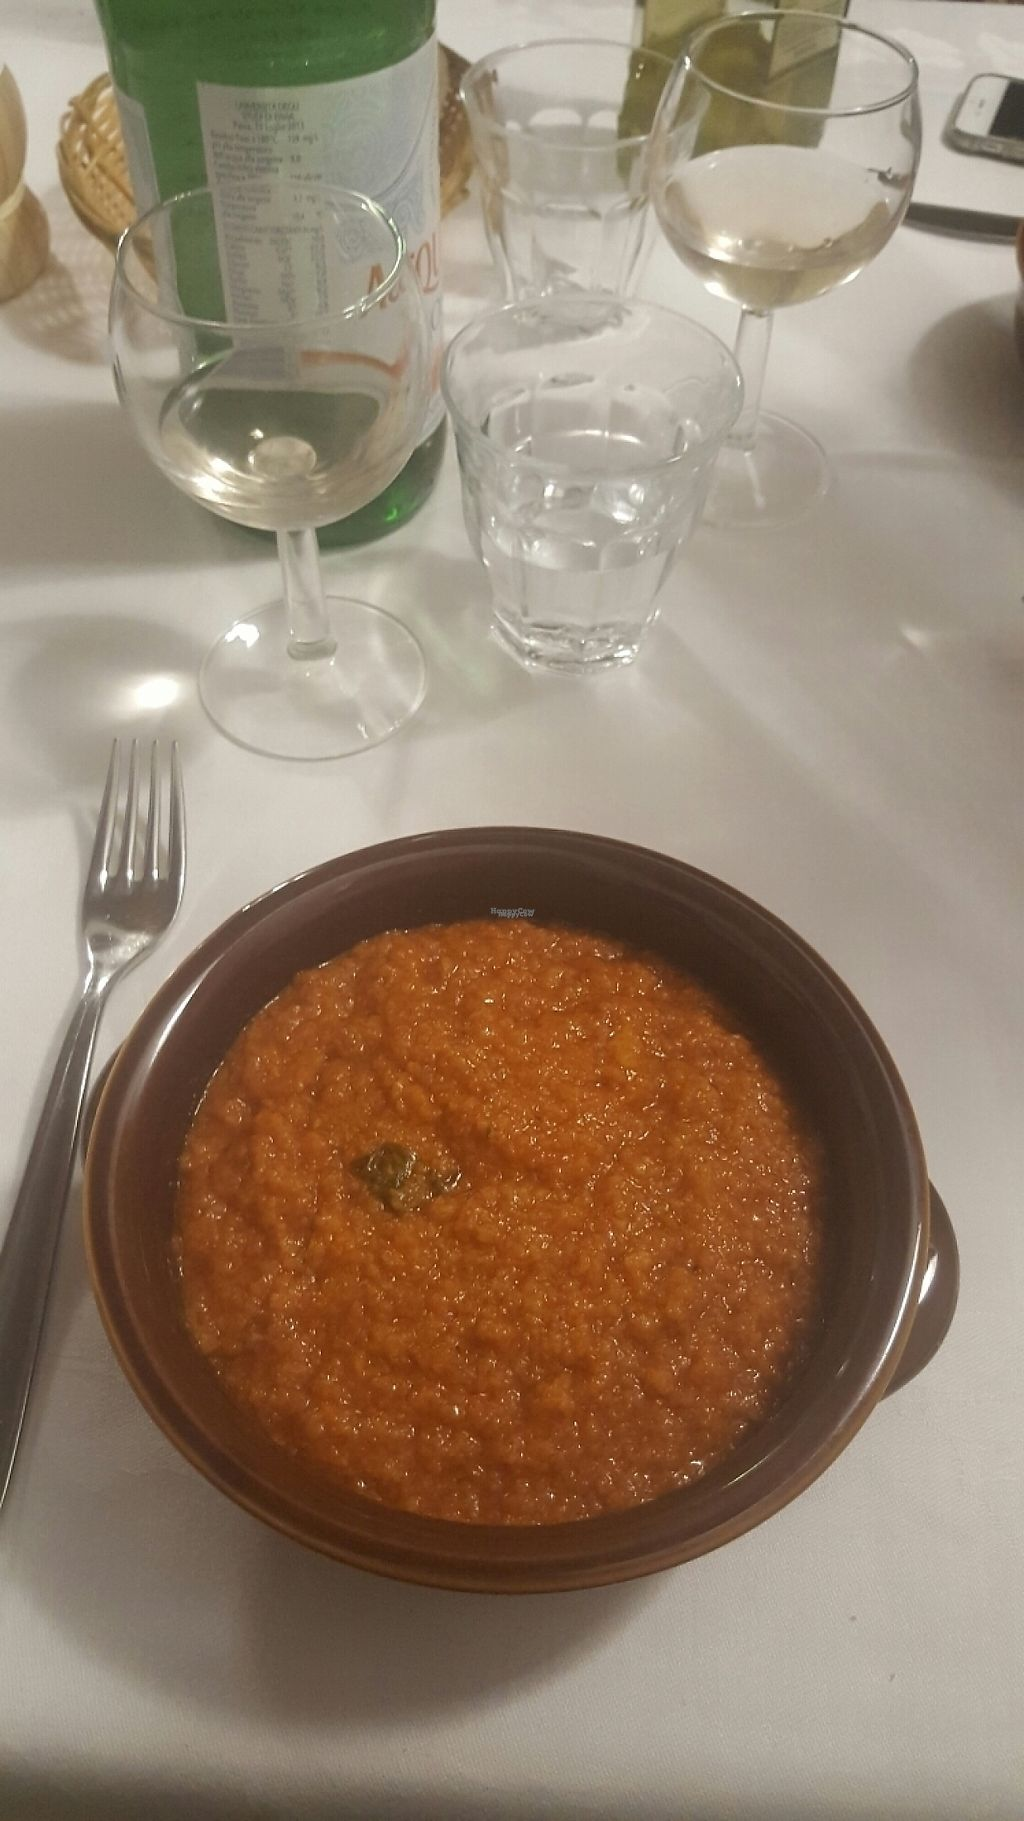 """Photo of Trattoria Enzo e Piero  by <a href=""""/members/profile/loveforveganfood"""">loveforveganfood</a> <br/>Tomatoe bread soup  <br/> February 11, 2017  - <a href='/contact/abuse/image/53571/225385'>Report</a>"""